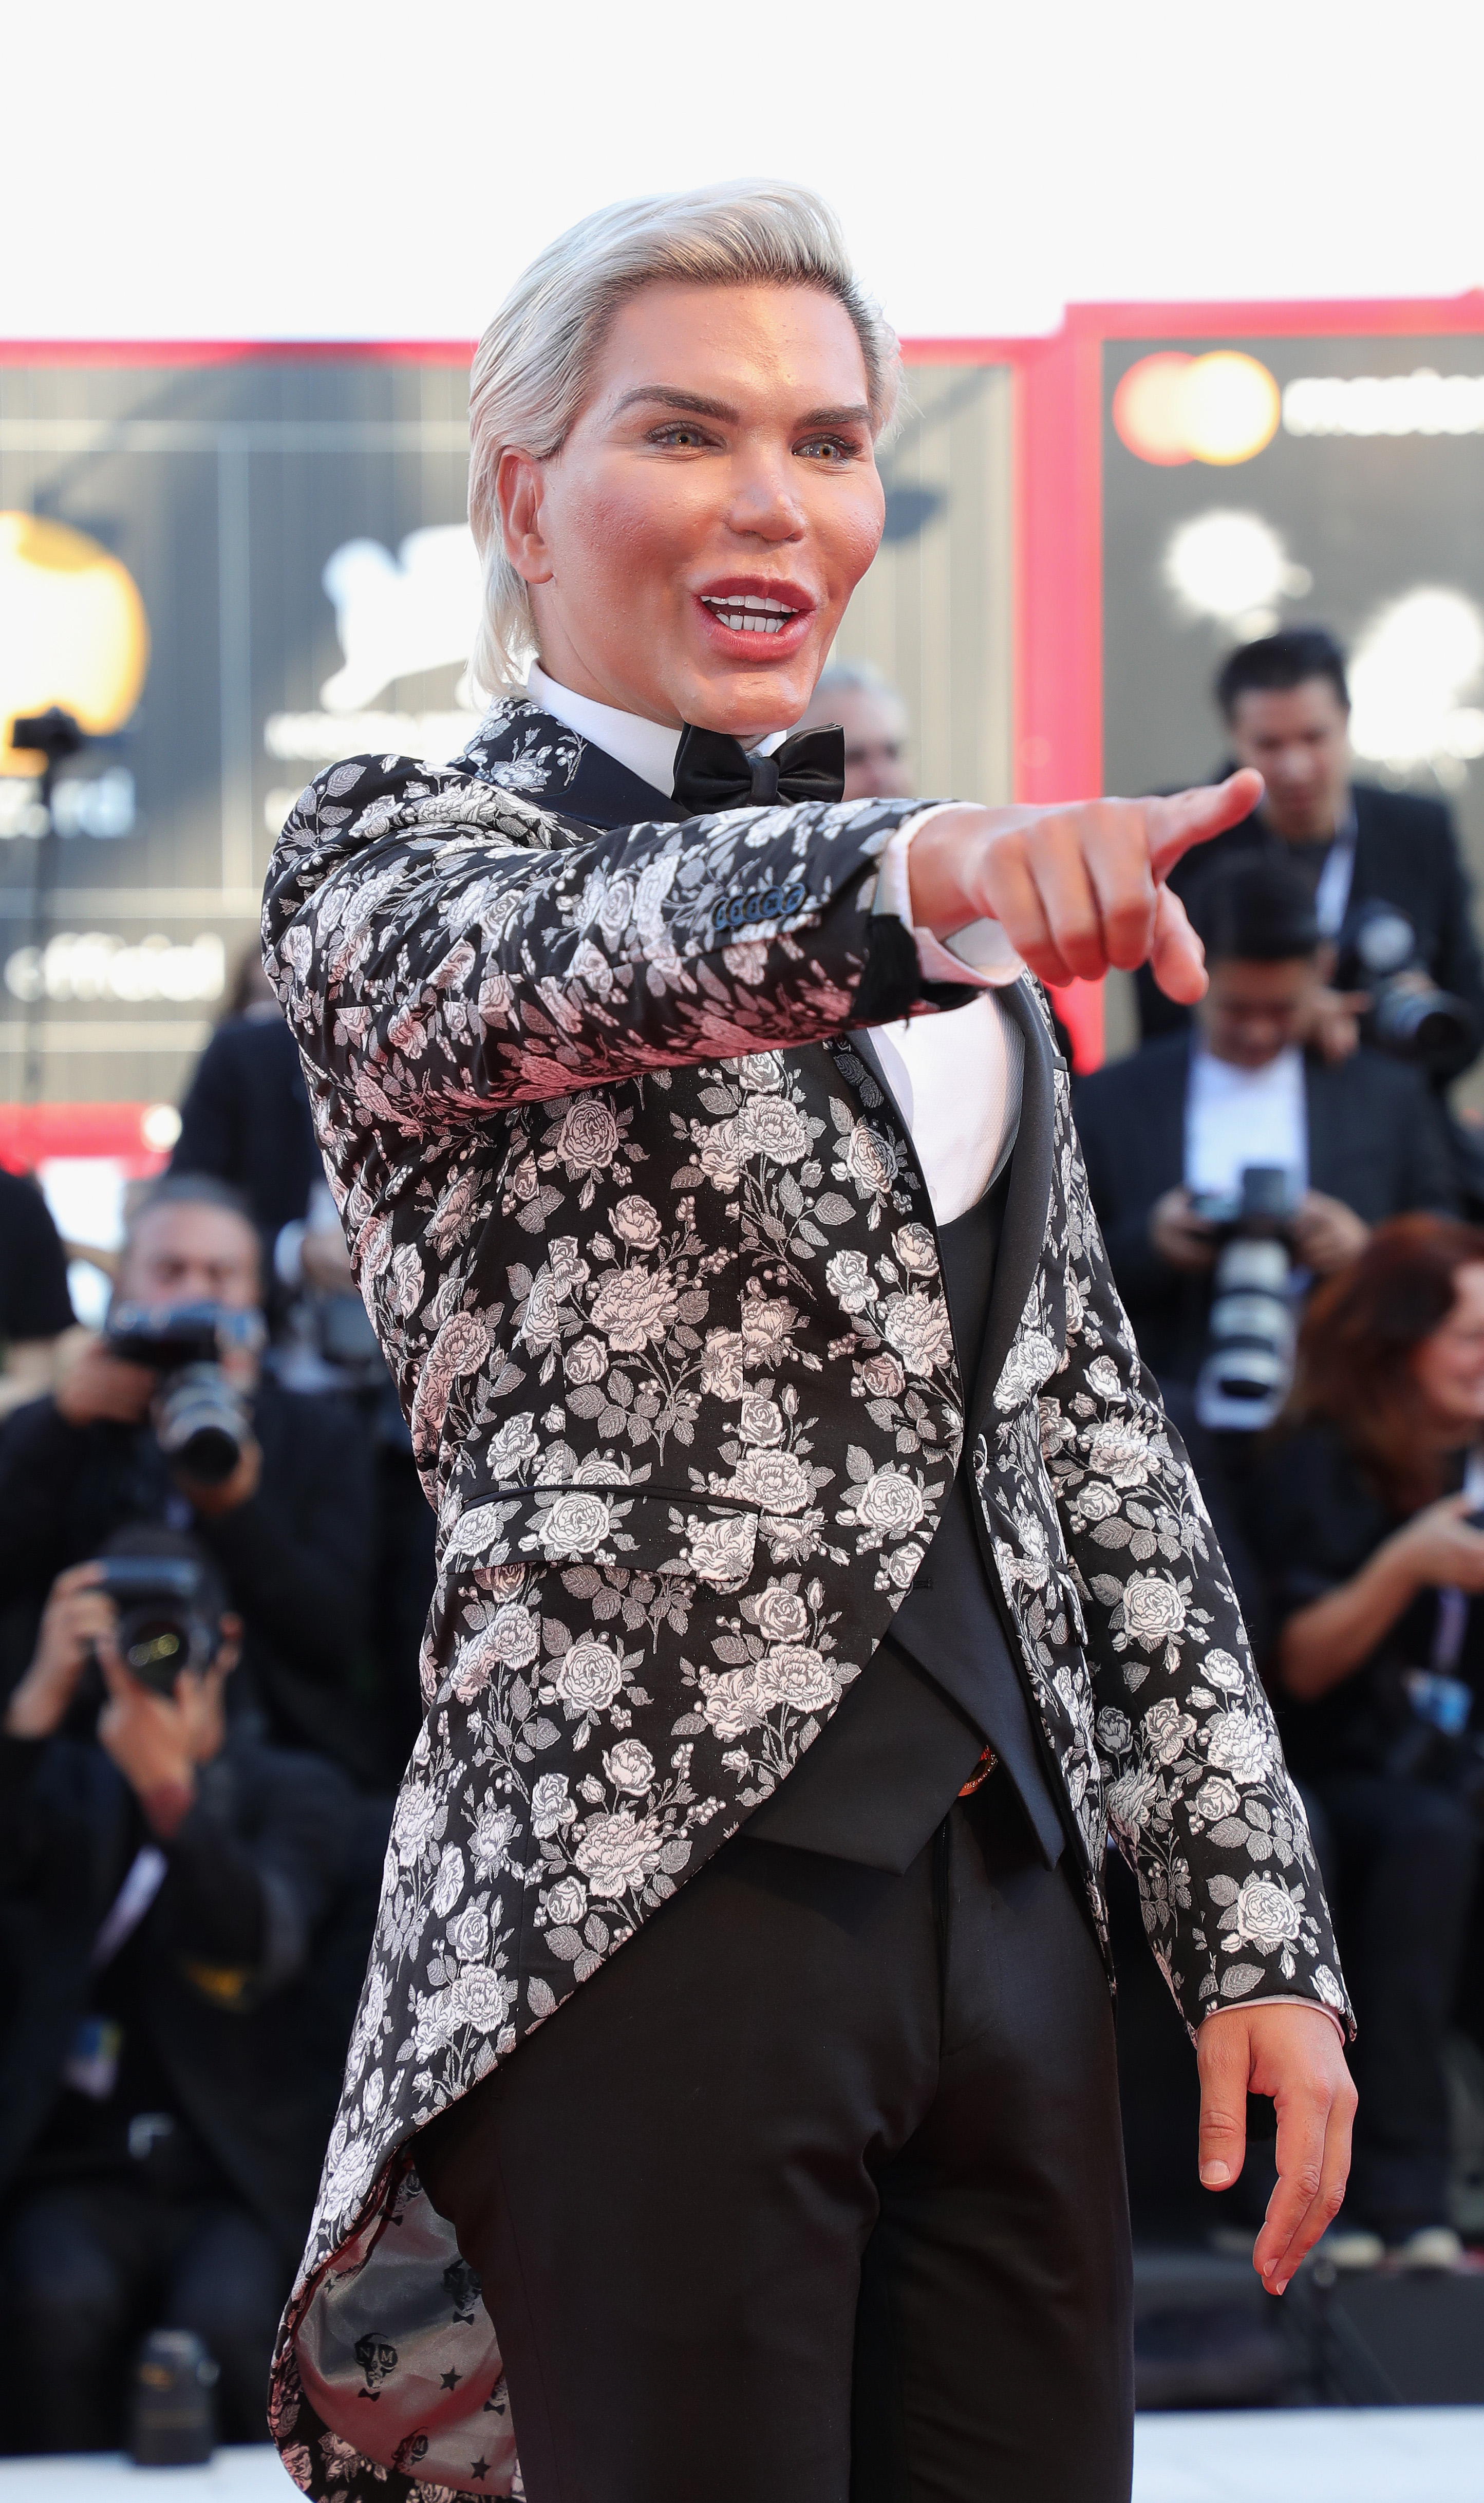 Rodrigo Alves walks the red carpet ahead of the 'Vox Lux' screening during the 75th Venice Film Festival at Sala Grande on September 4, 2018, in Venice, Italy. (Getty Images)